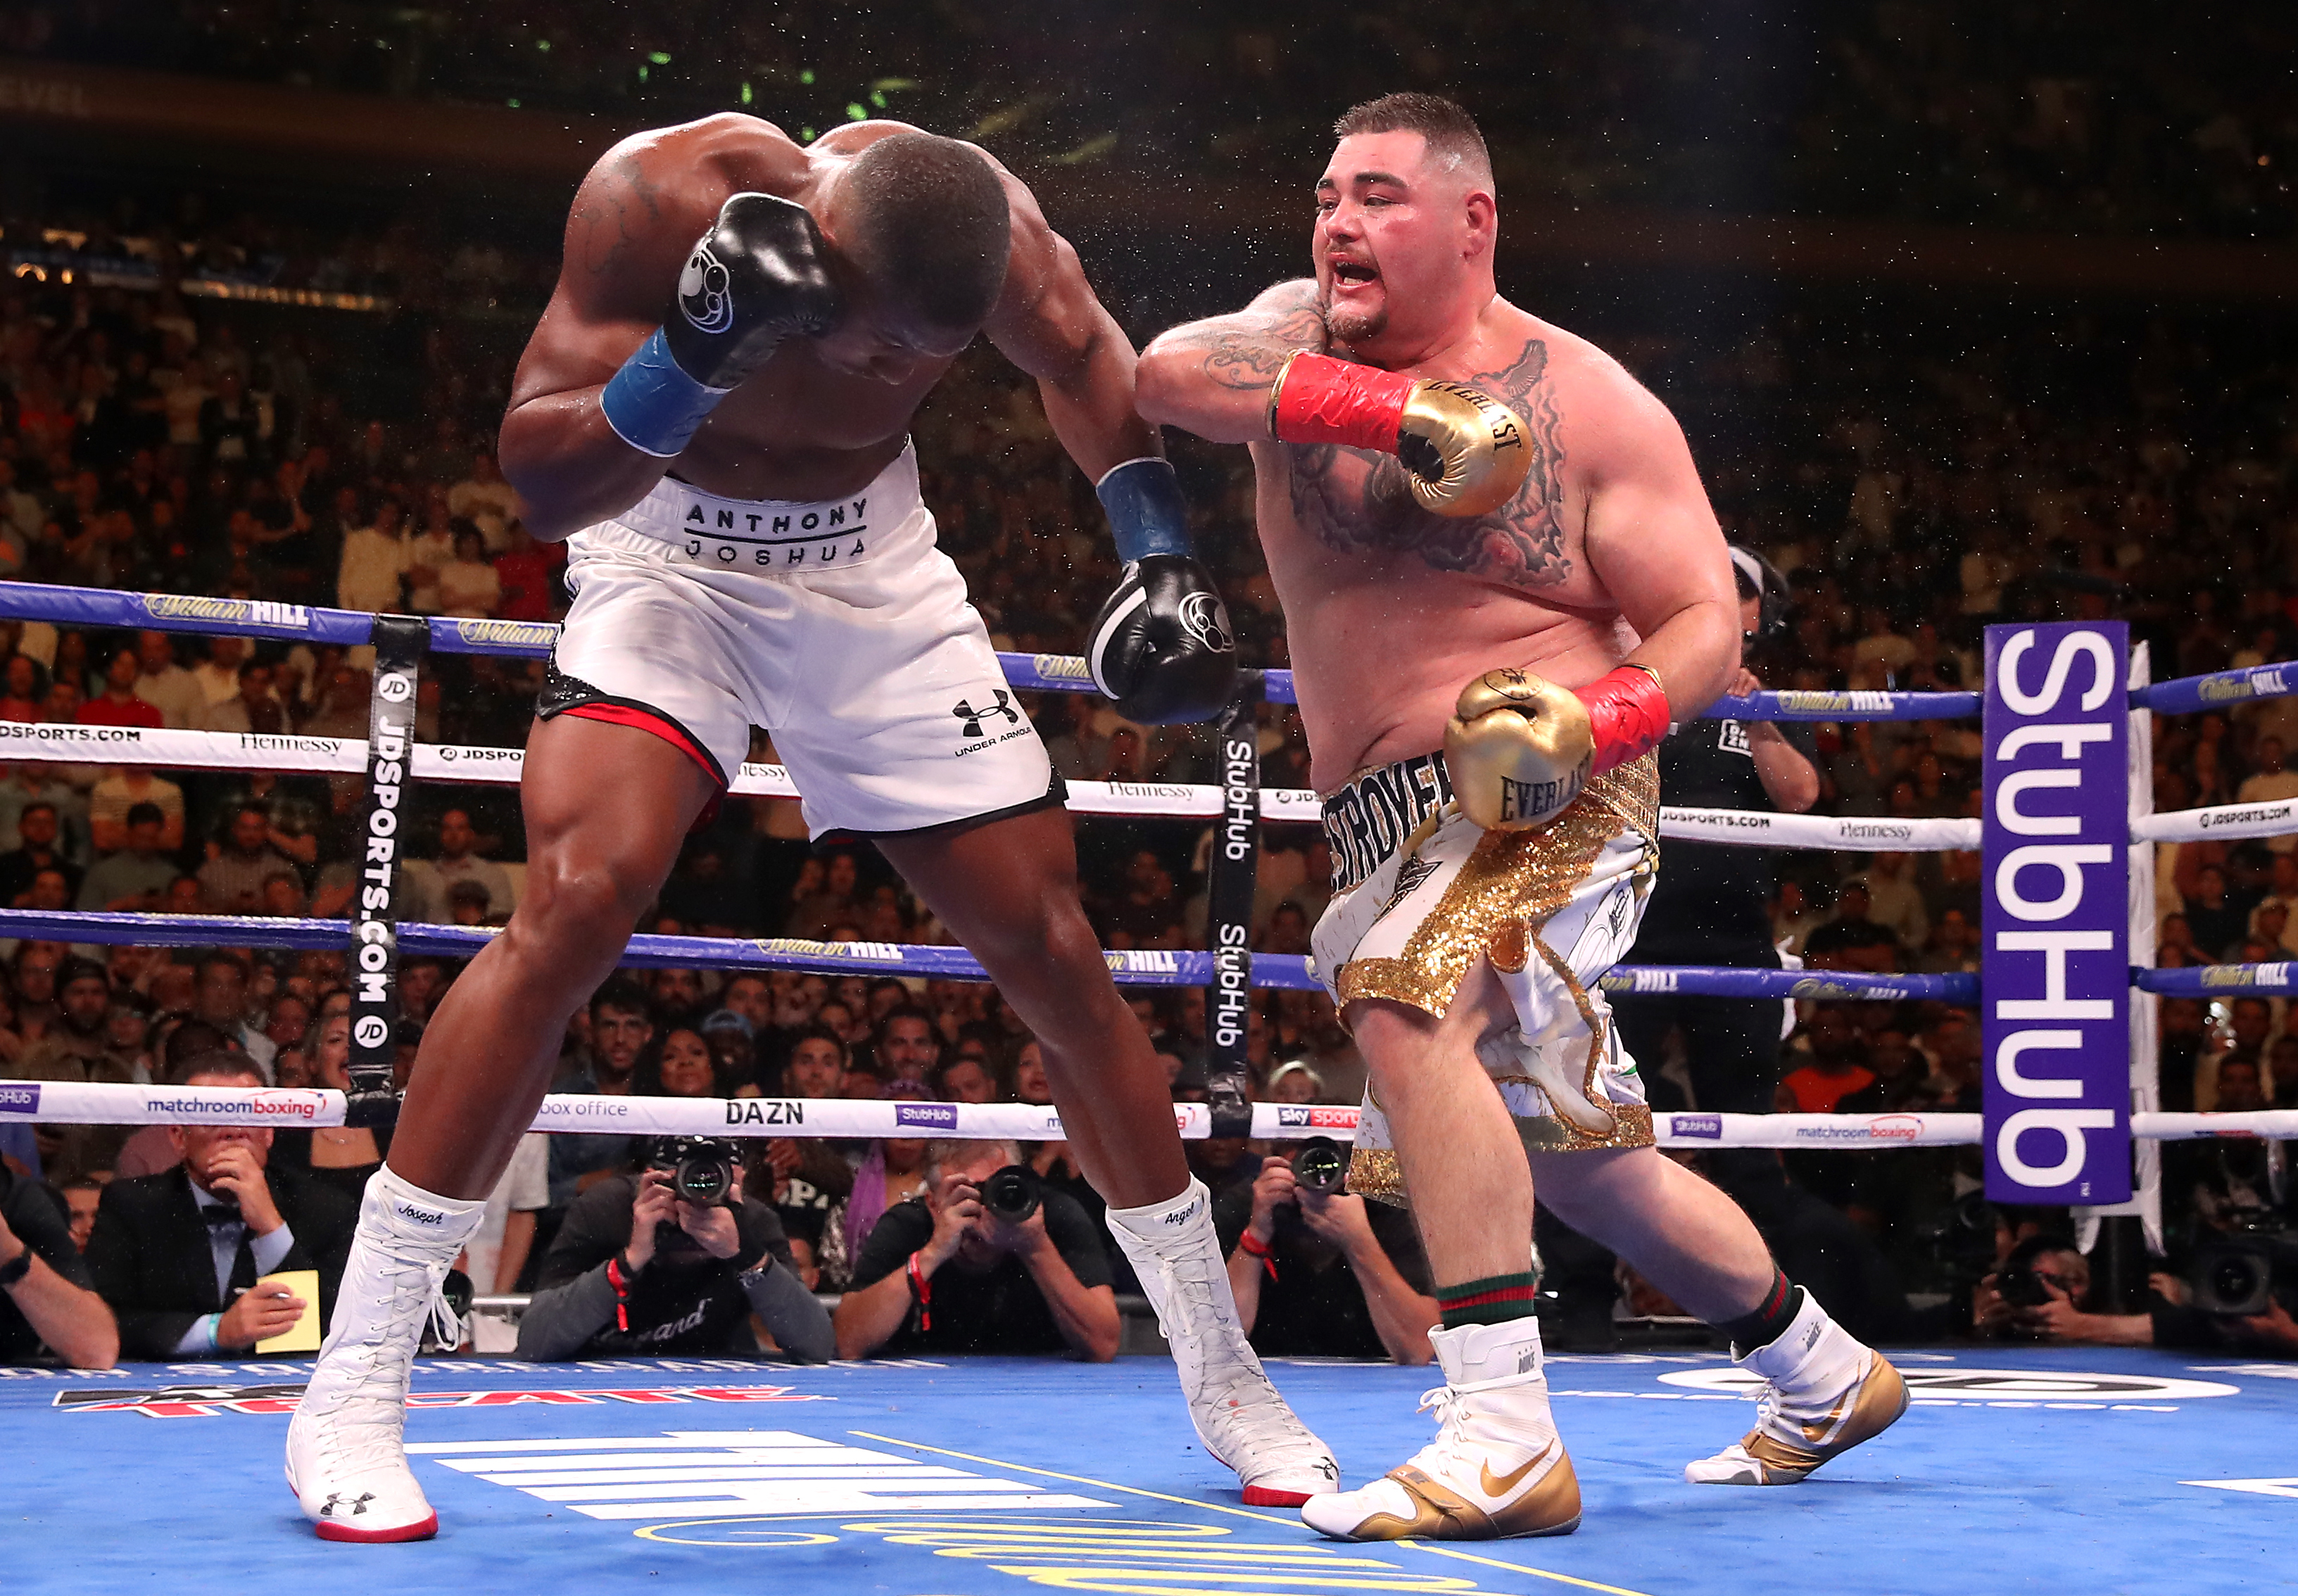 Anthony Joshua vs. Andy Ruiz Jr. rematch official